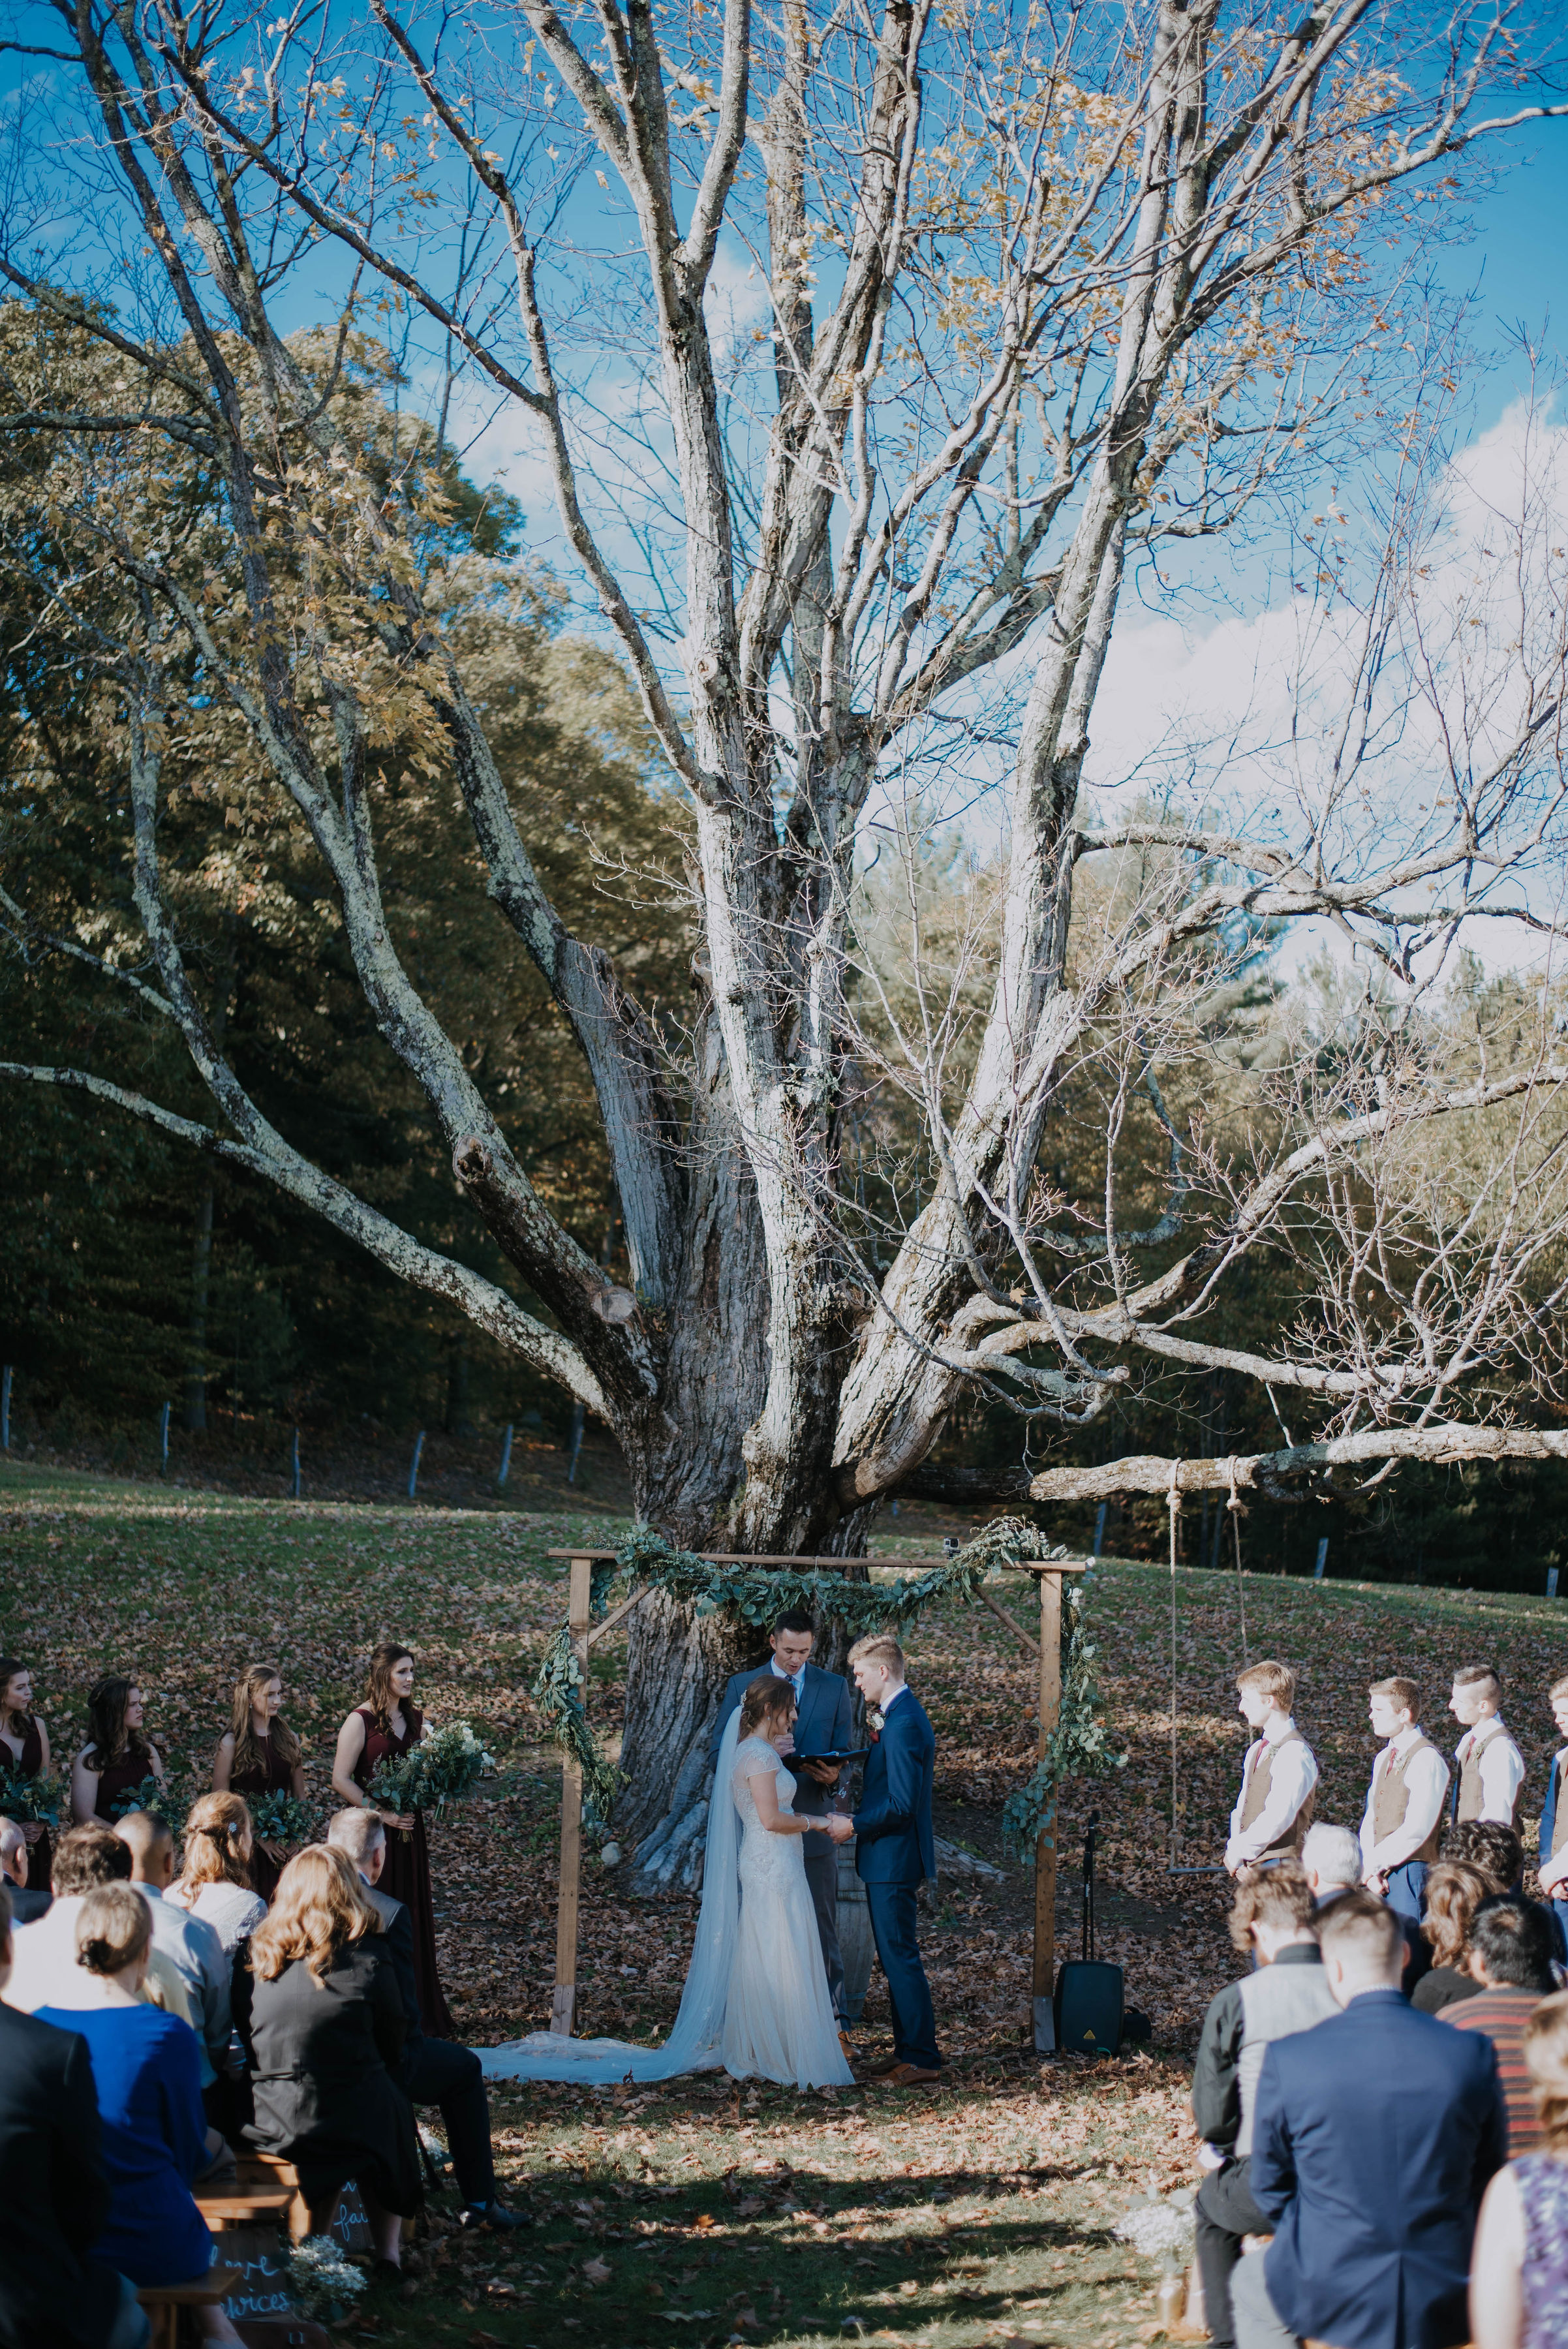 Allrose Farm Tree Ceremony